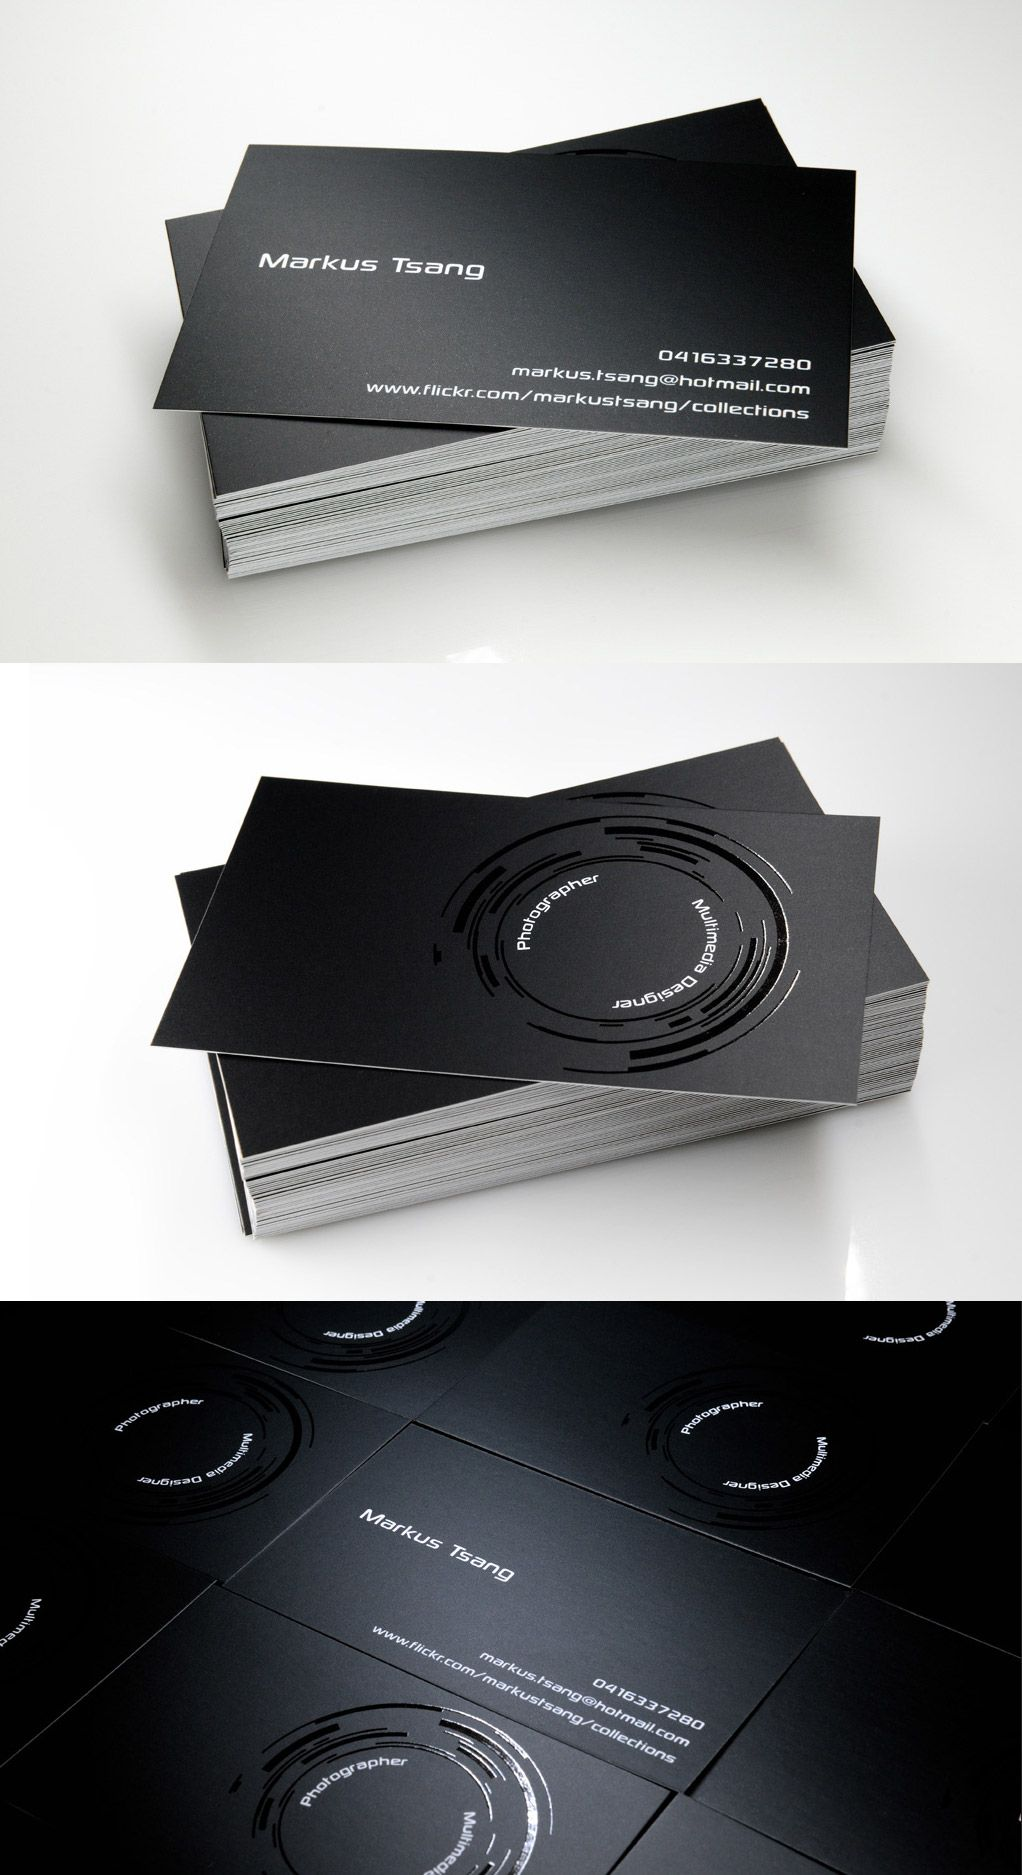 Photography Theme Business Card With A Black Background And High Gloss Rings That Depicts Cameras Lens